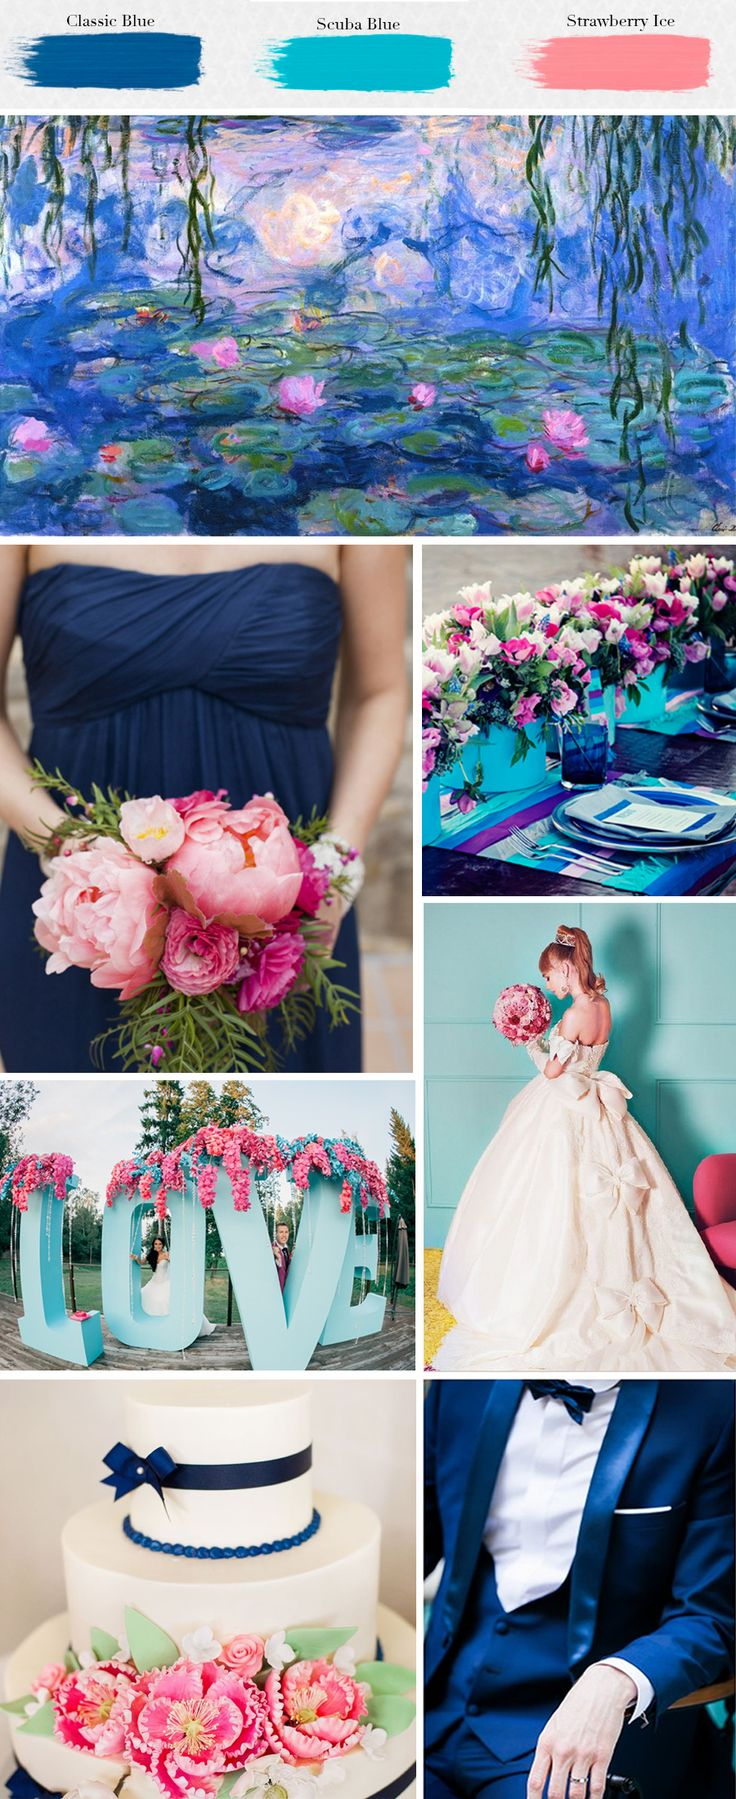 Strictly Weddings, great mood board style, event, emotional, ideas